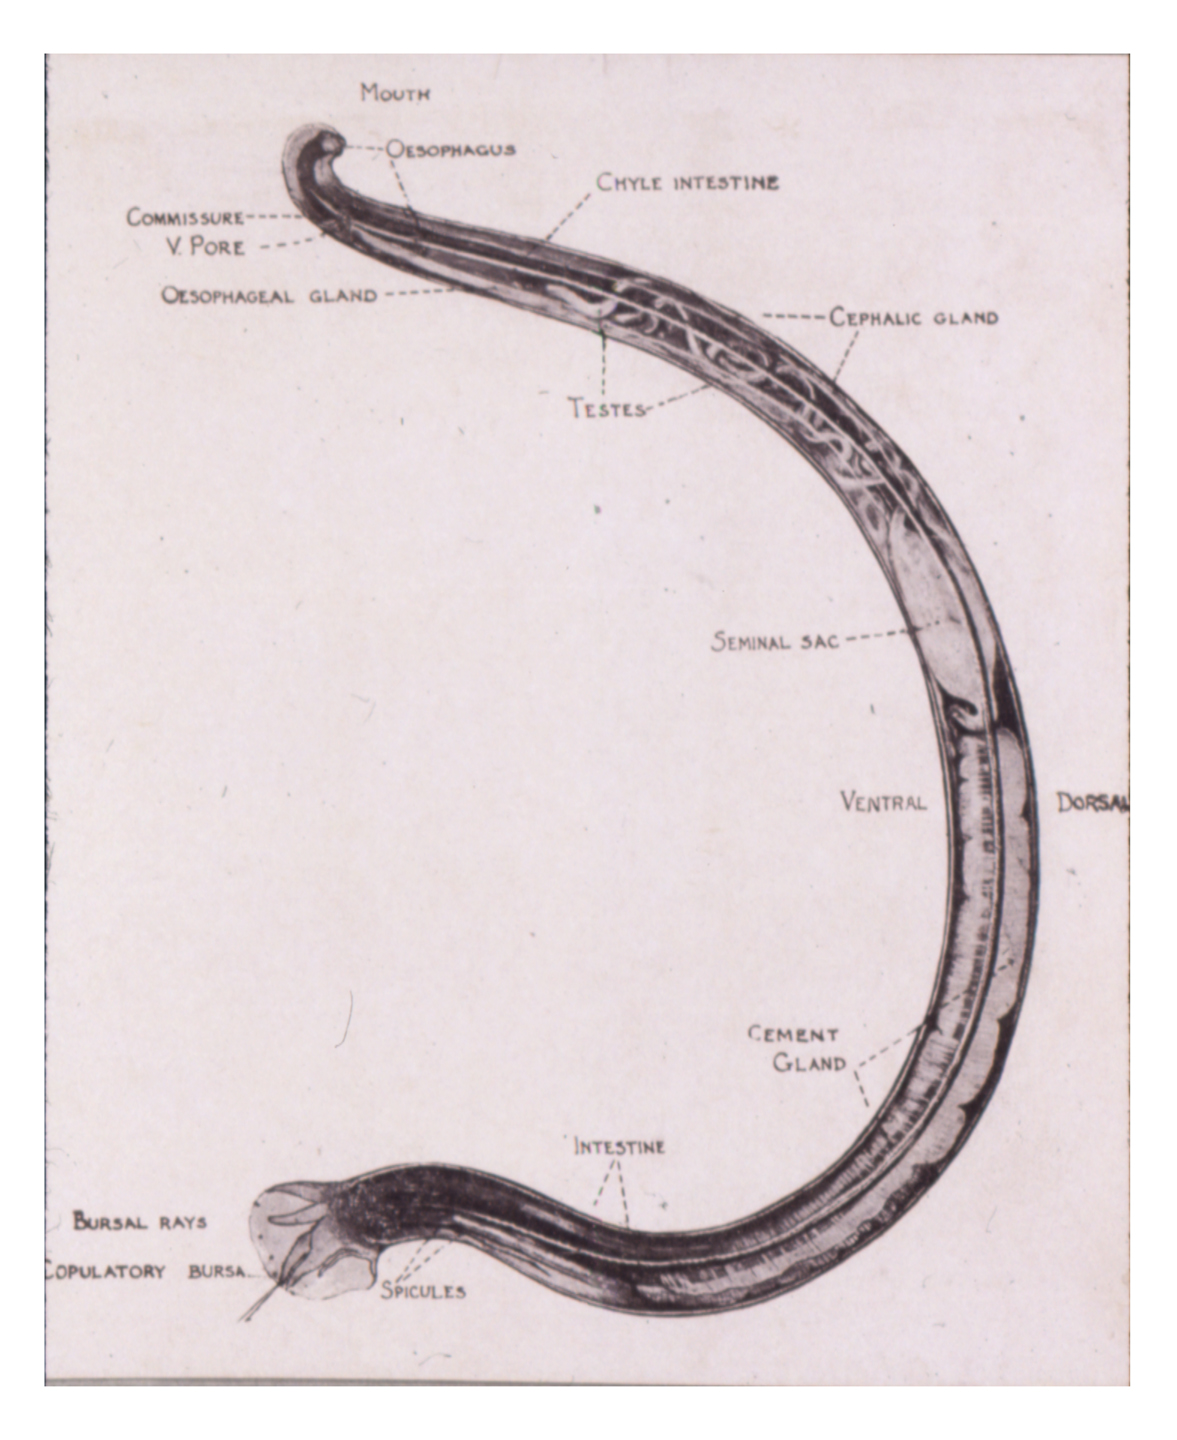 worm diagram labeled wiring spotlights 5 pole relay hookworm. causes, symptoms, treatment hookworm